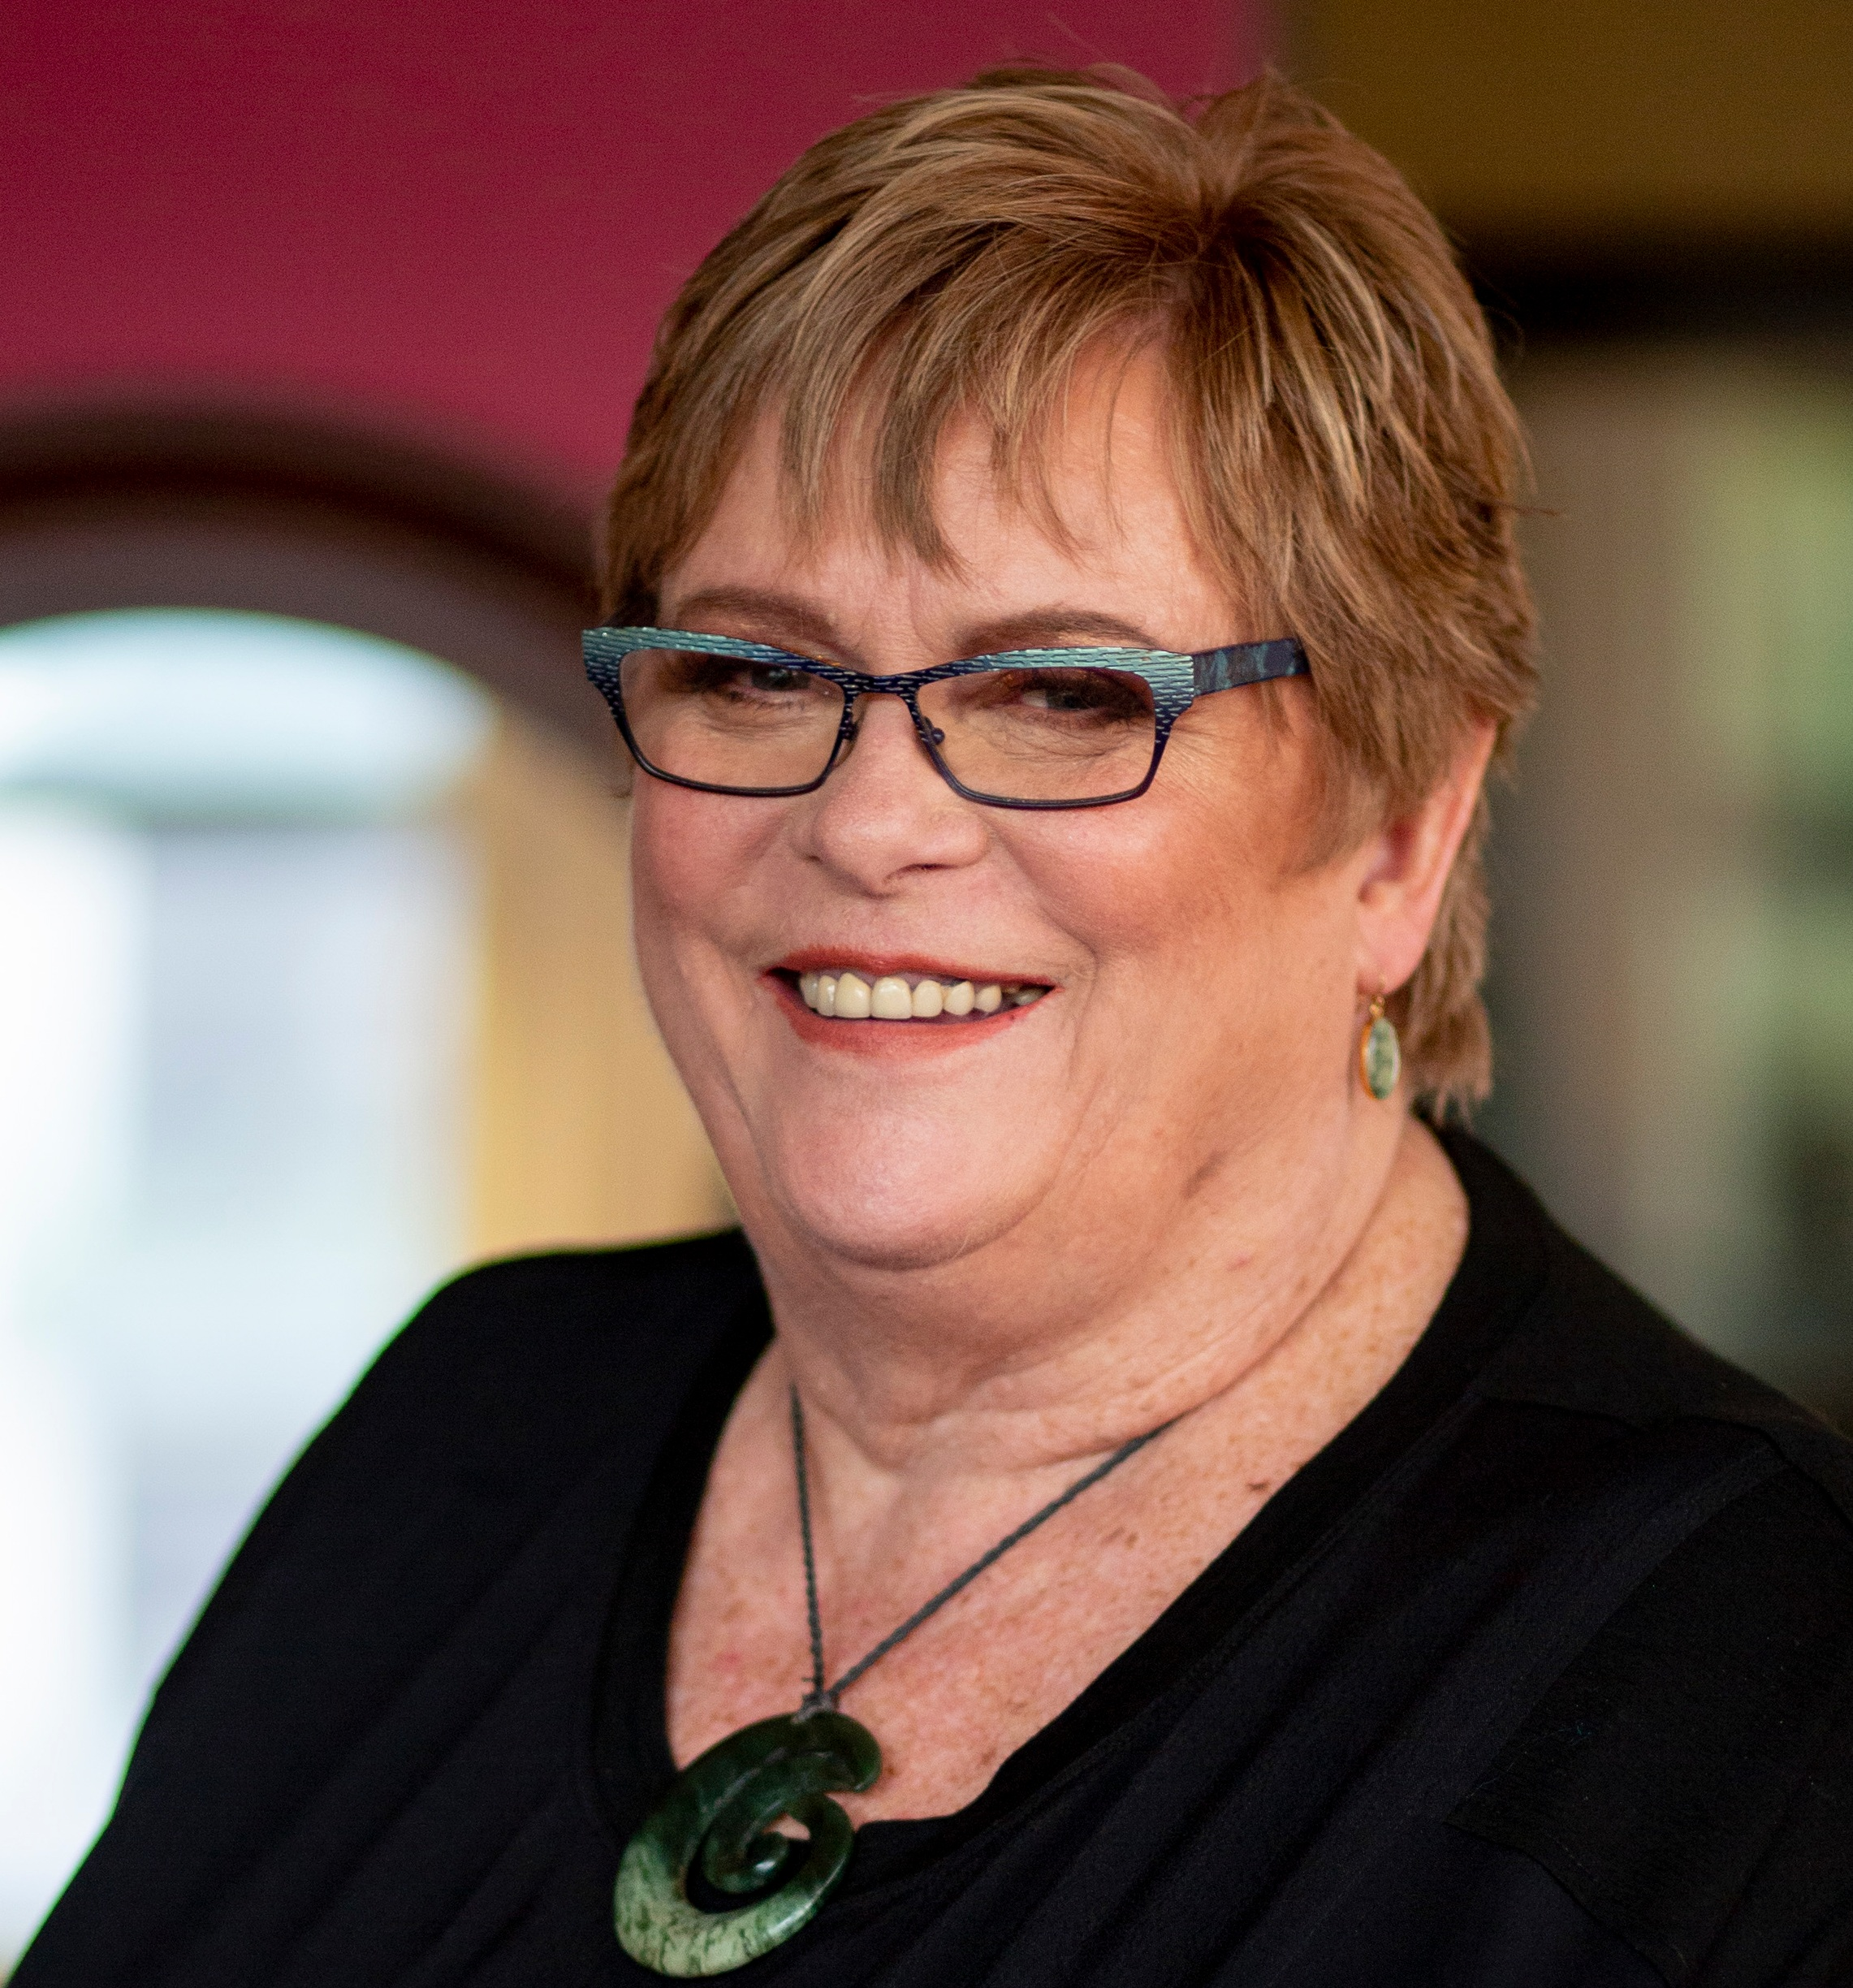 Glenda Hughes - Wellington Party Candidate for Greater Wellington Regional Council & CCDHB